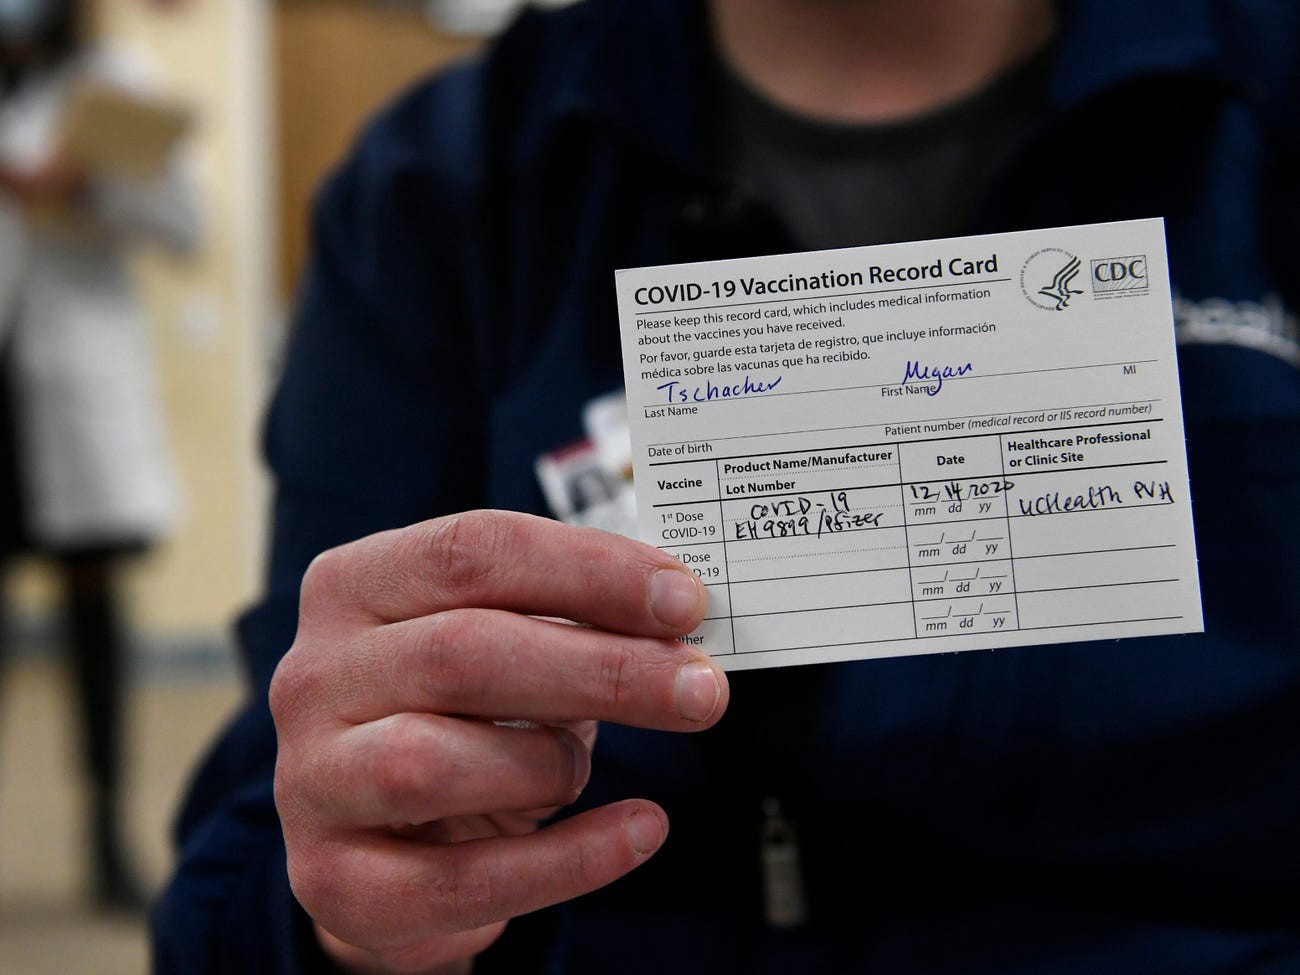 ICU nurse Megan Tschacher shows off her vaccination record card at UC Health Poudre Valley Hospital in Fort Collins, Colorado.